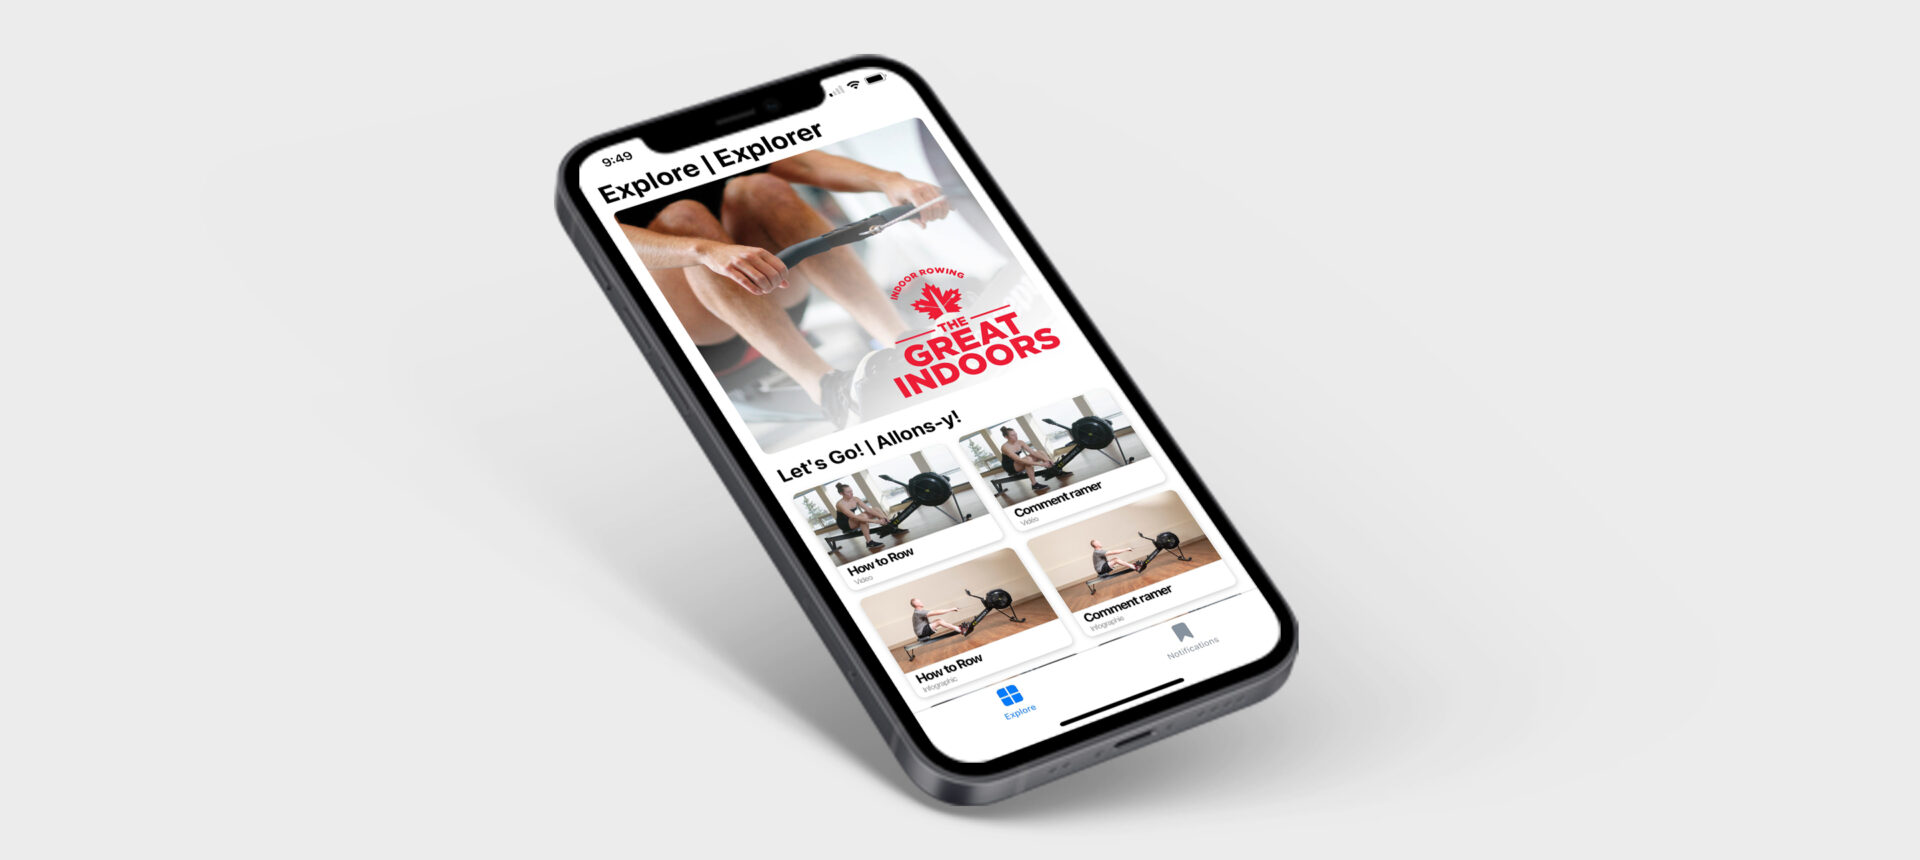 RCA indoor rowing app now available